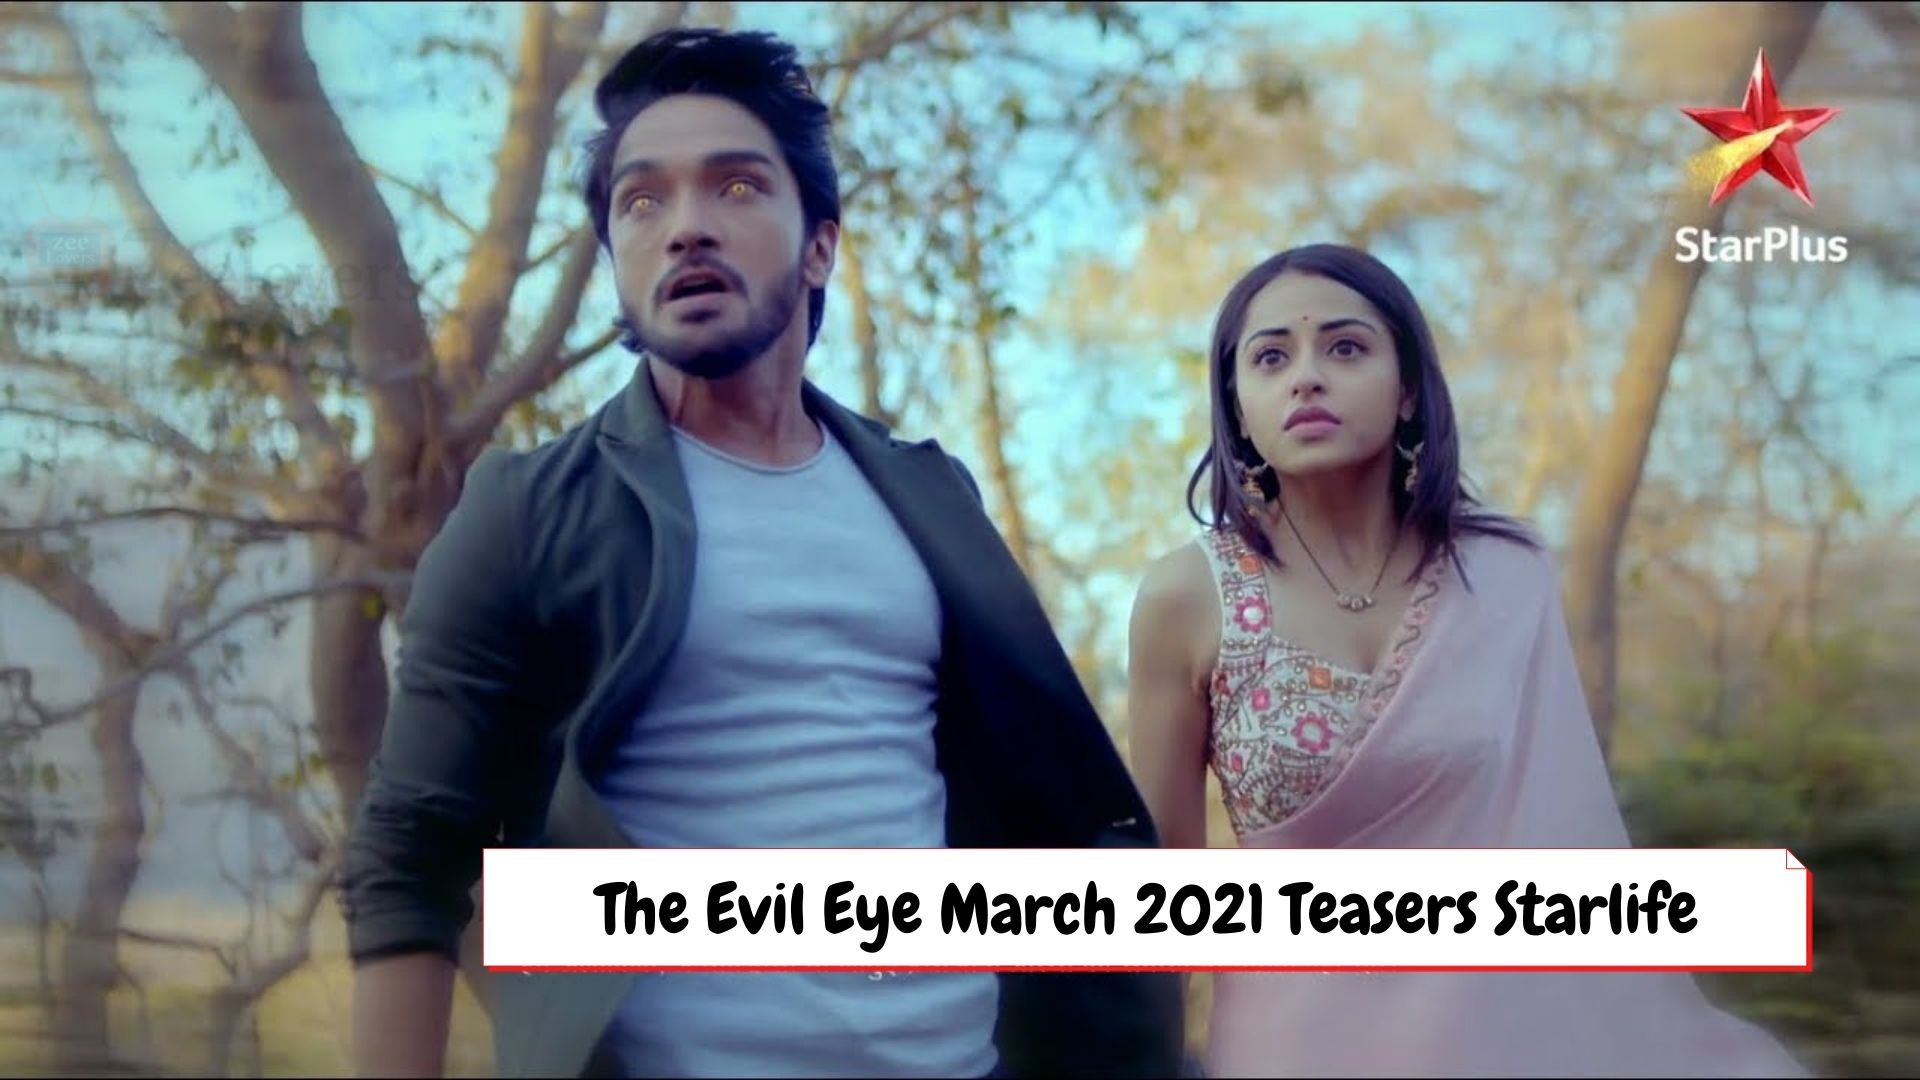 The Evil Eye March 2021 Teasers